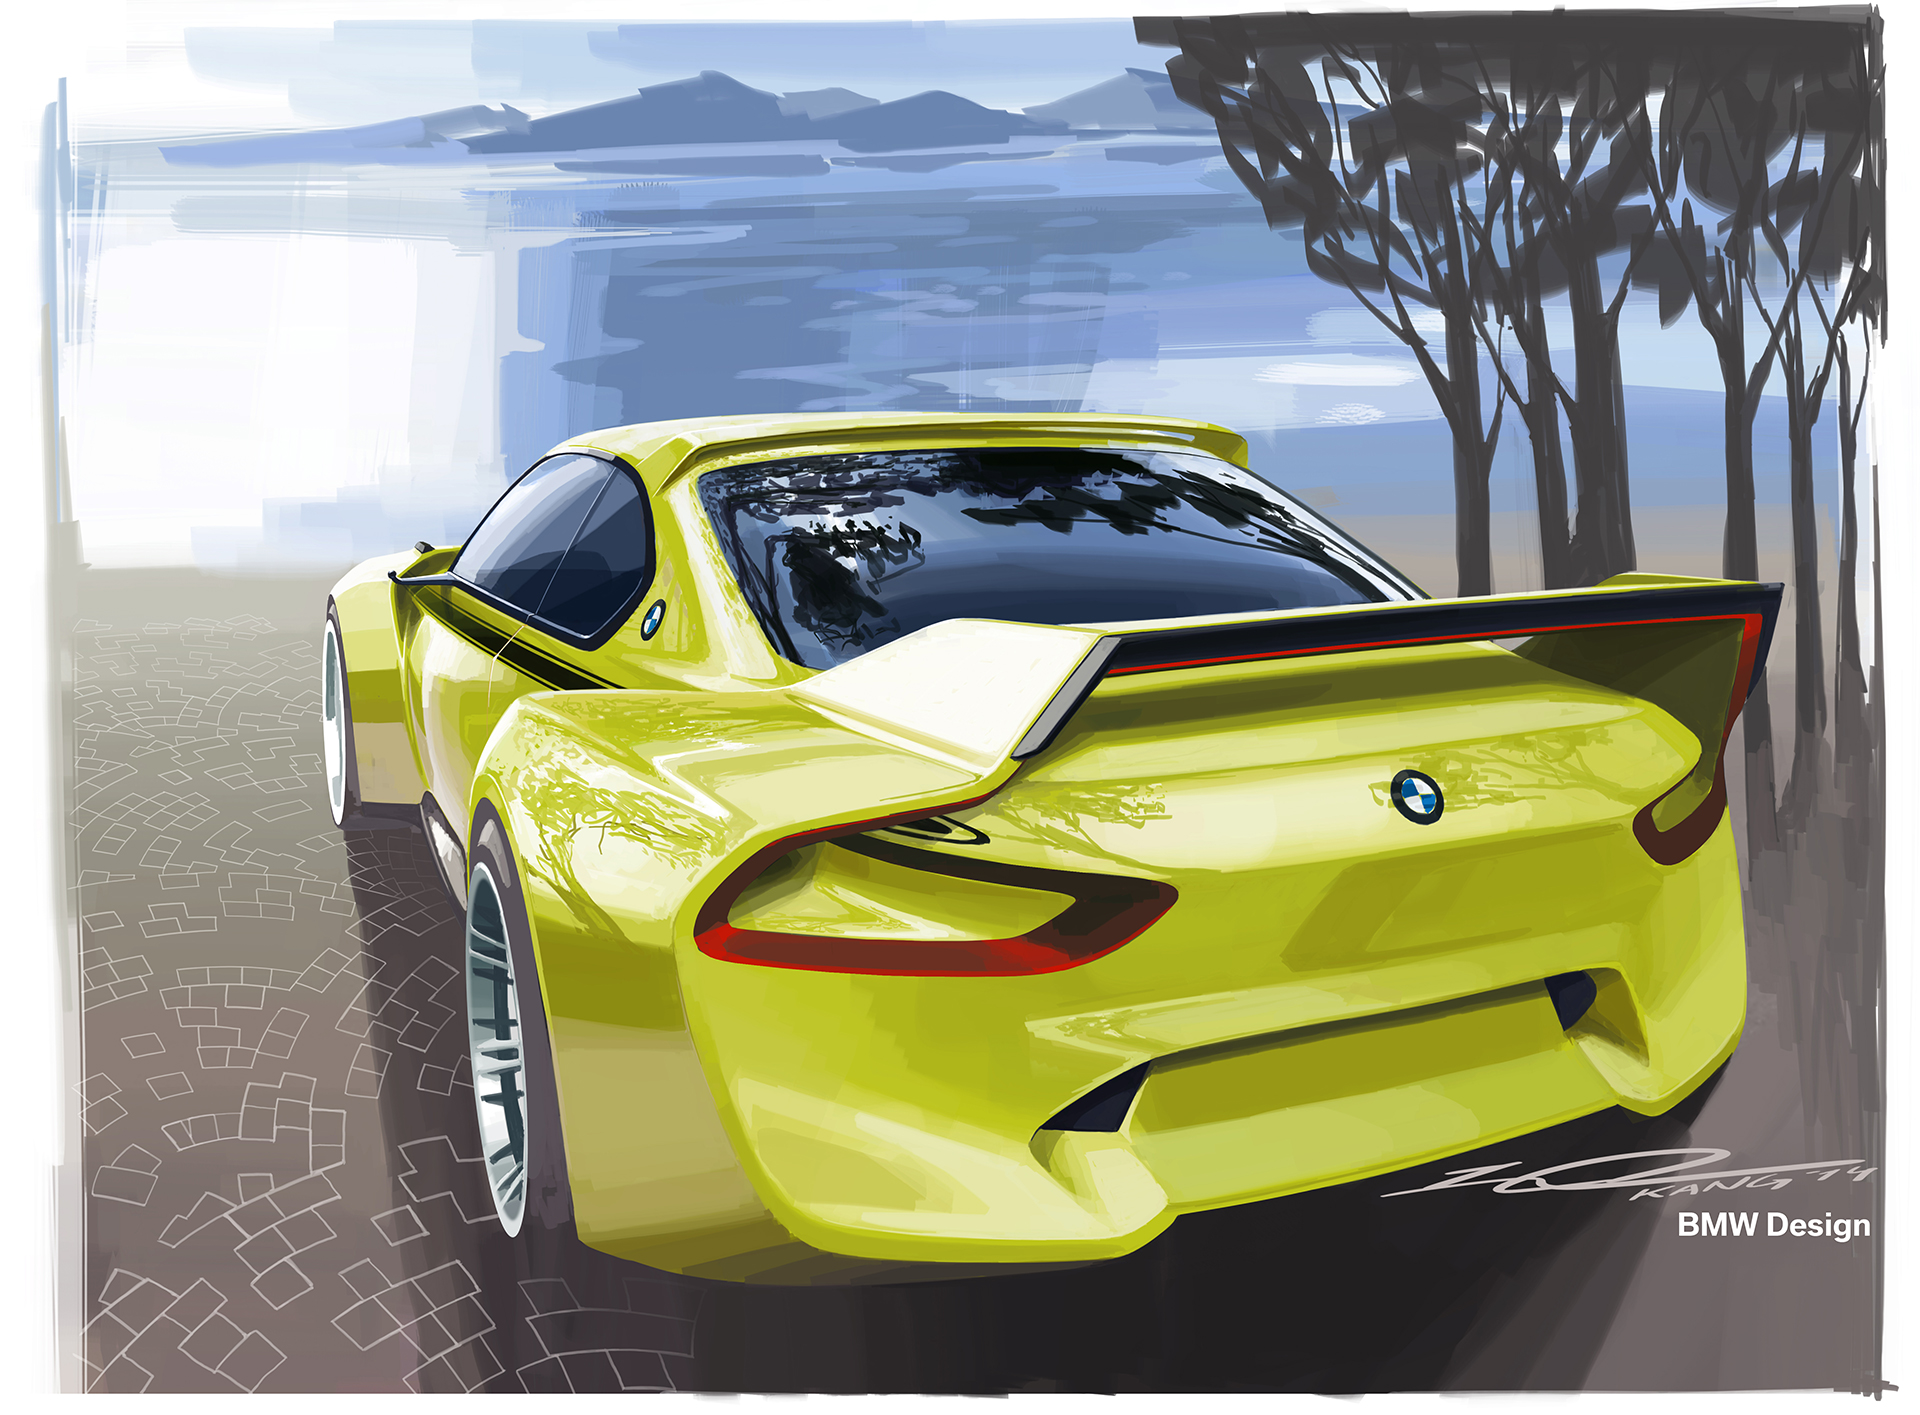 BMW 3.0 CSL Hommage - sketch rear